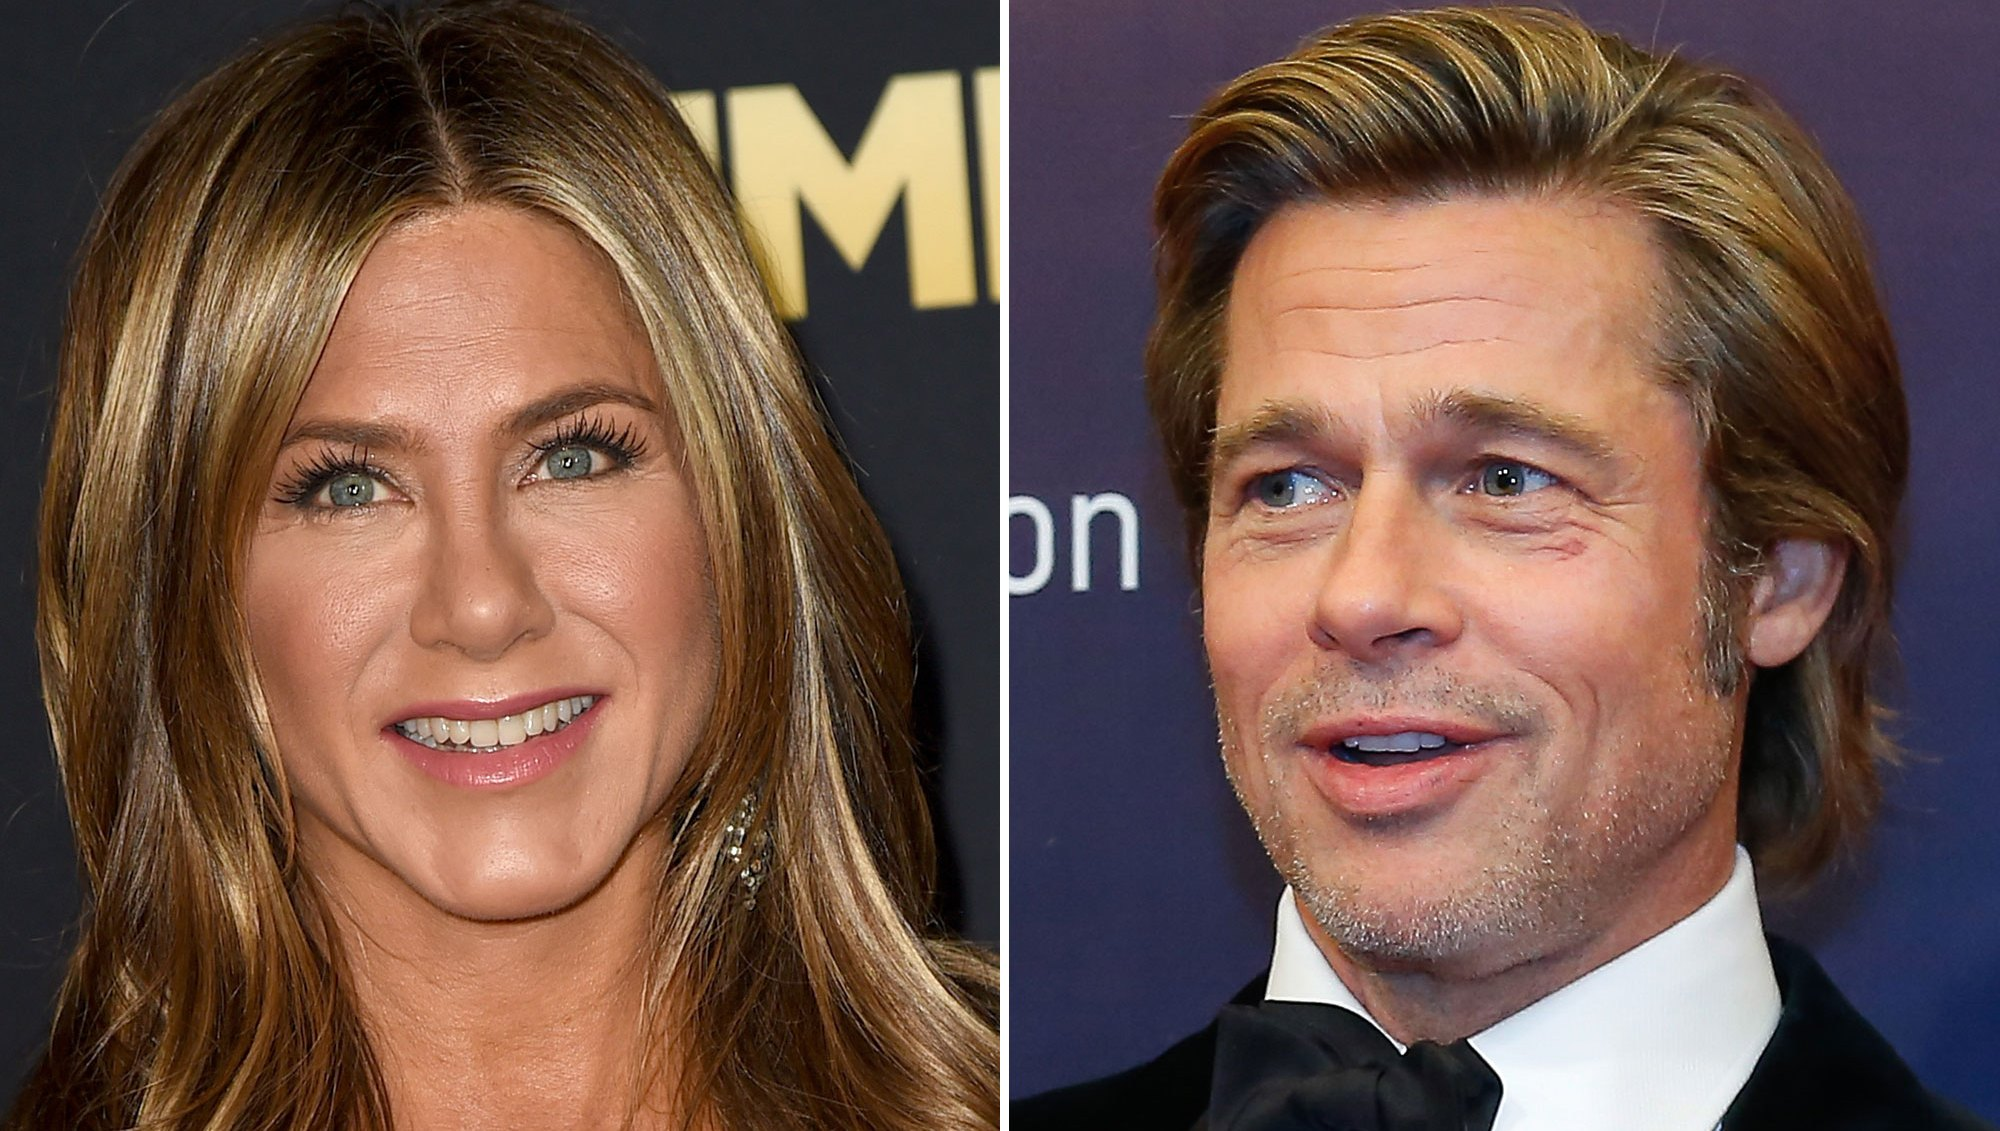 Jennifer Aniston Is 'Happy' Ex-Husband Brad Pitt Attended Her 50th Birthday Party